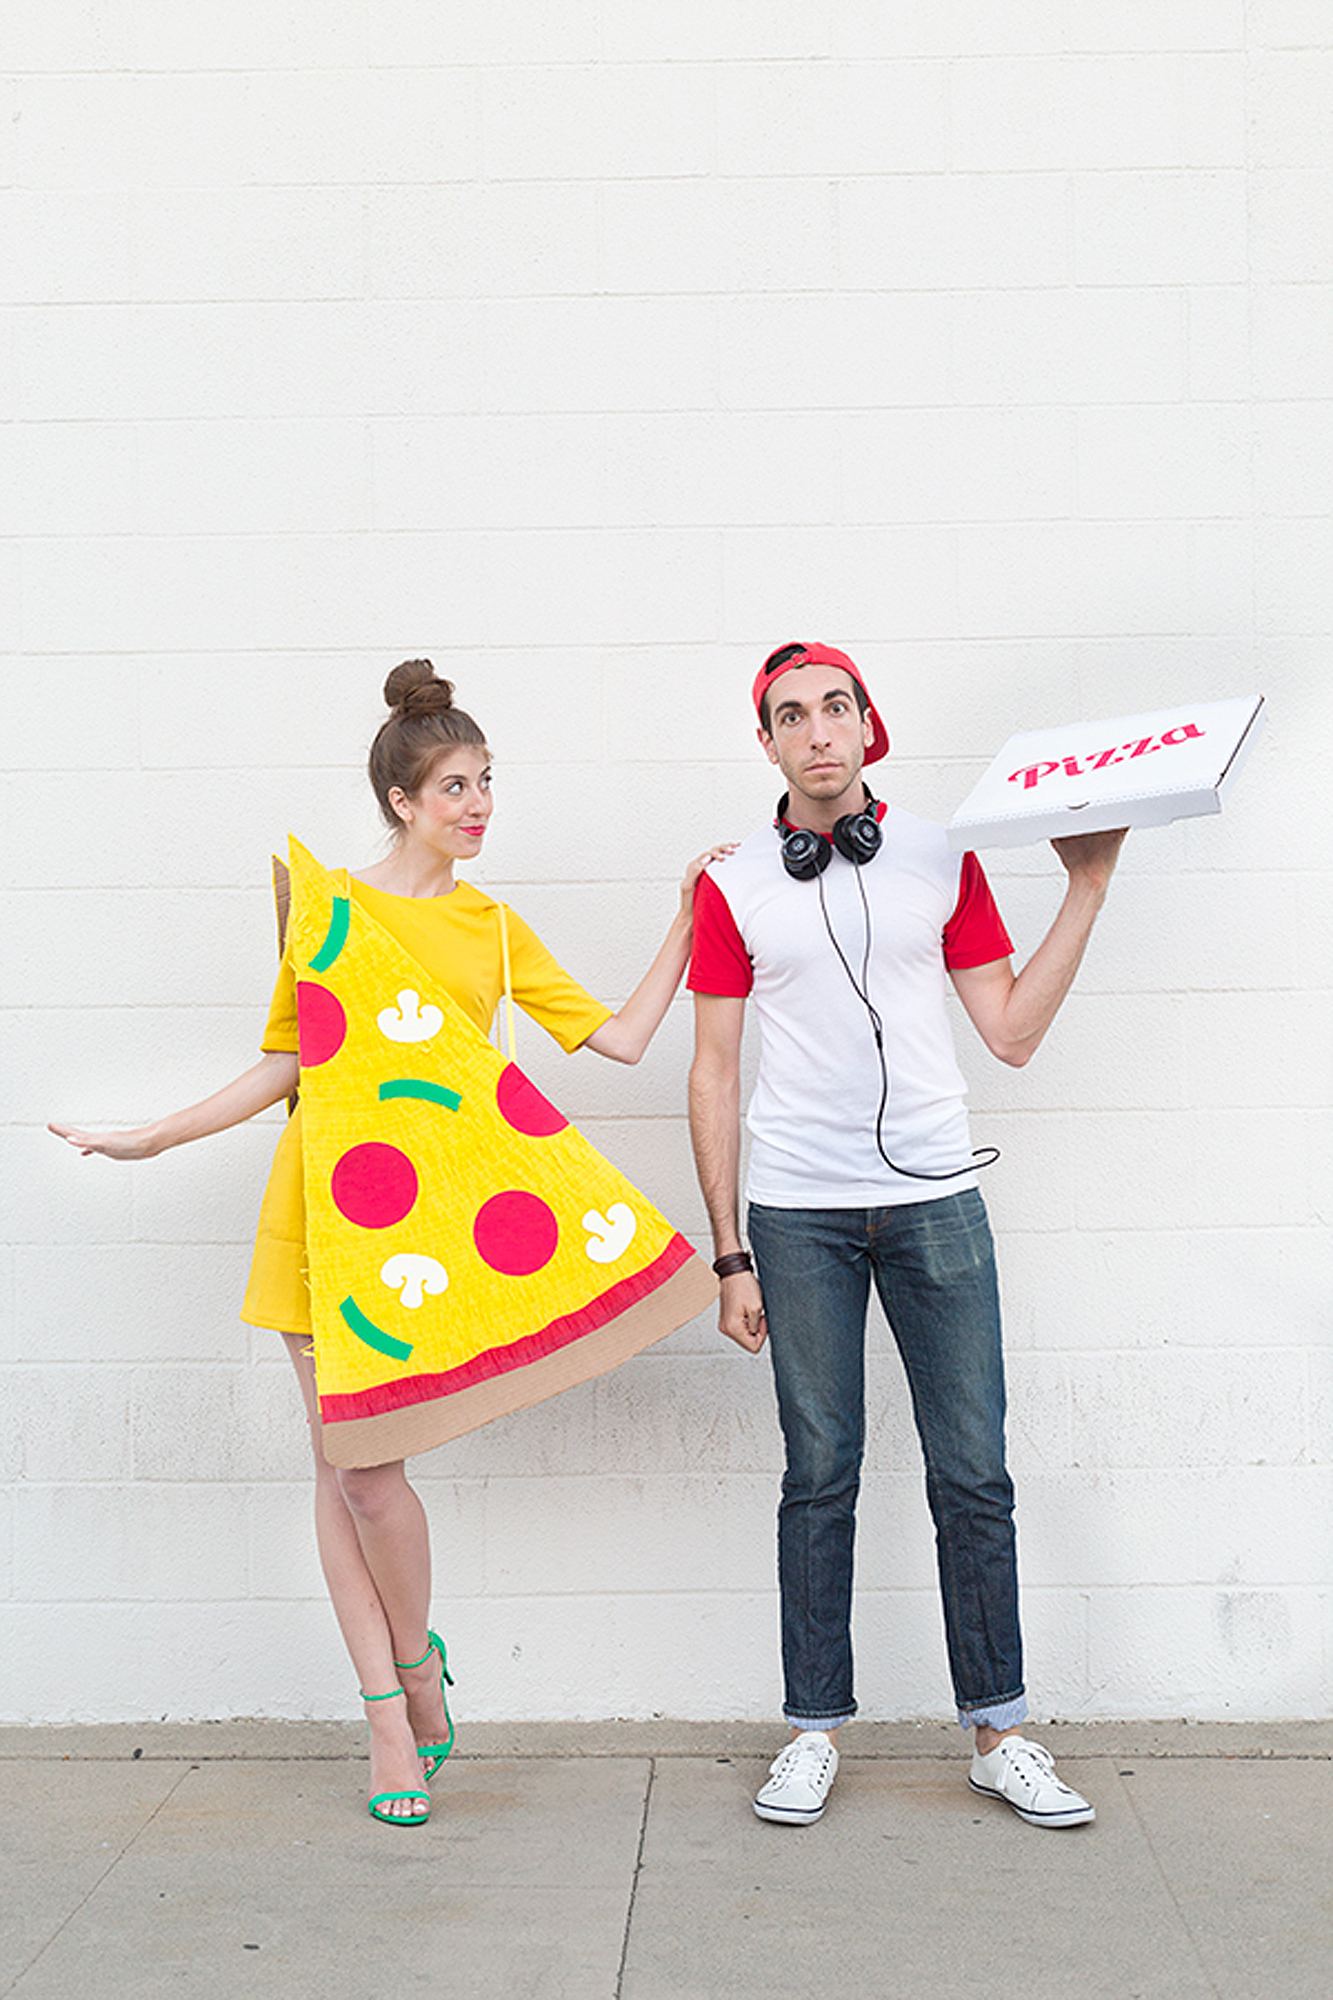 Pizza Slice and Delivery Boy - Food